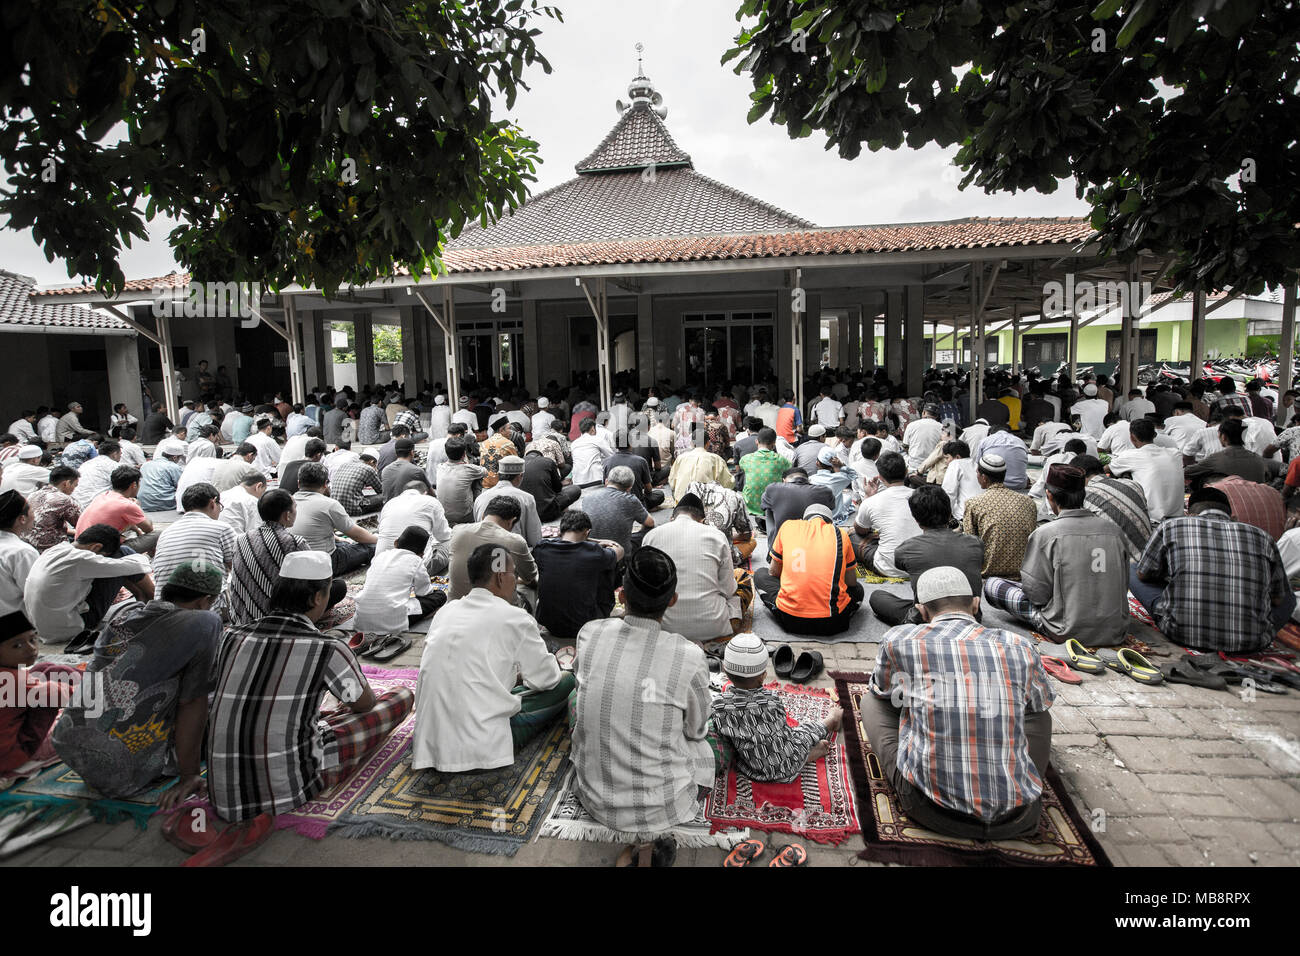 Small busy village mosque in Indonesia - Stock Image